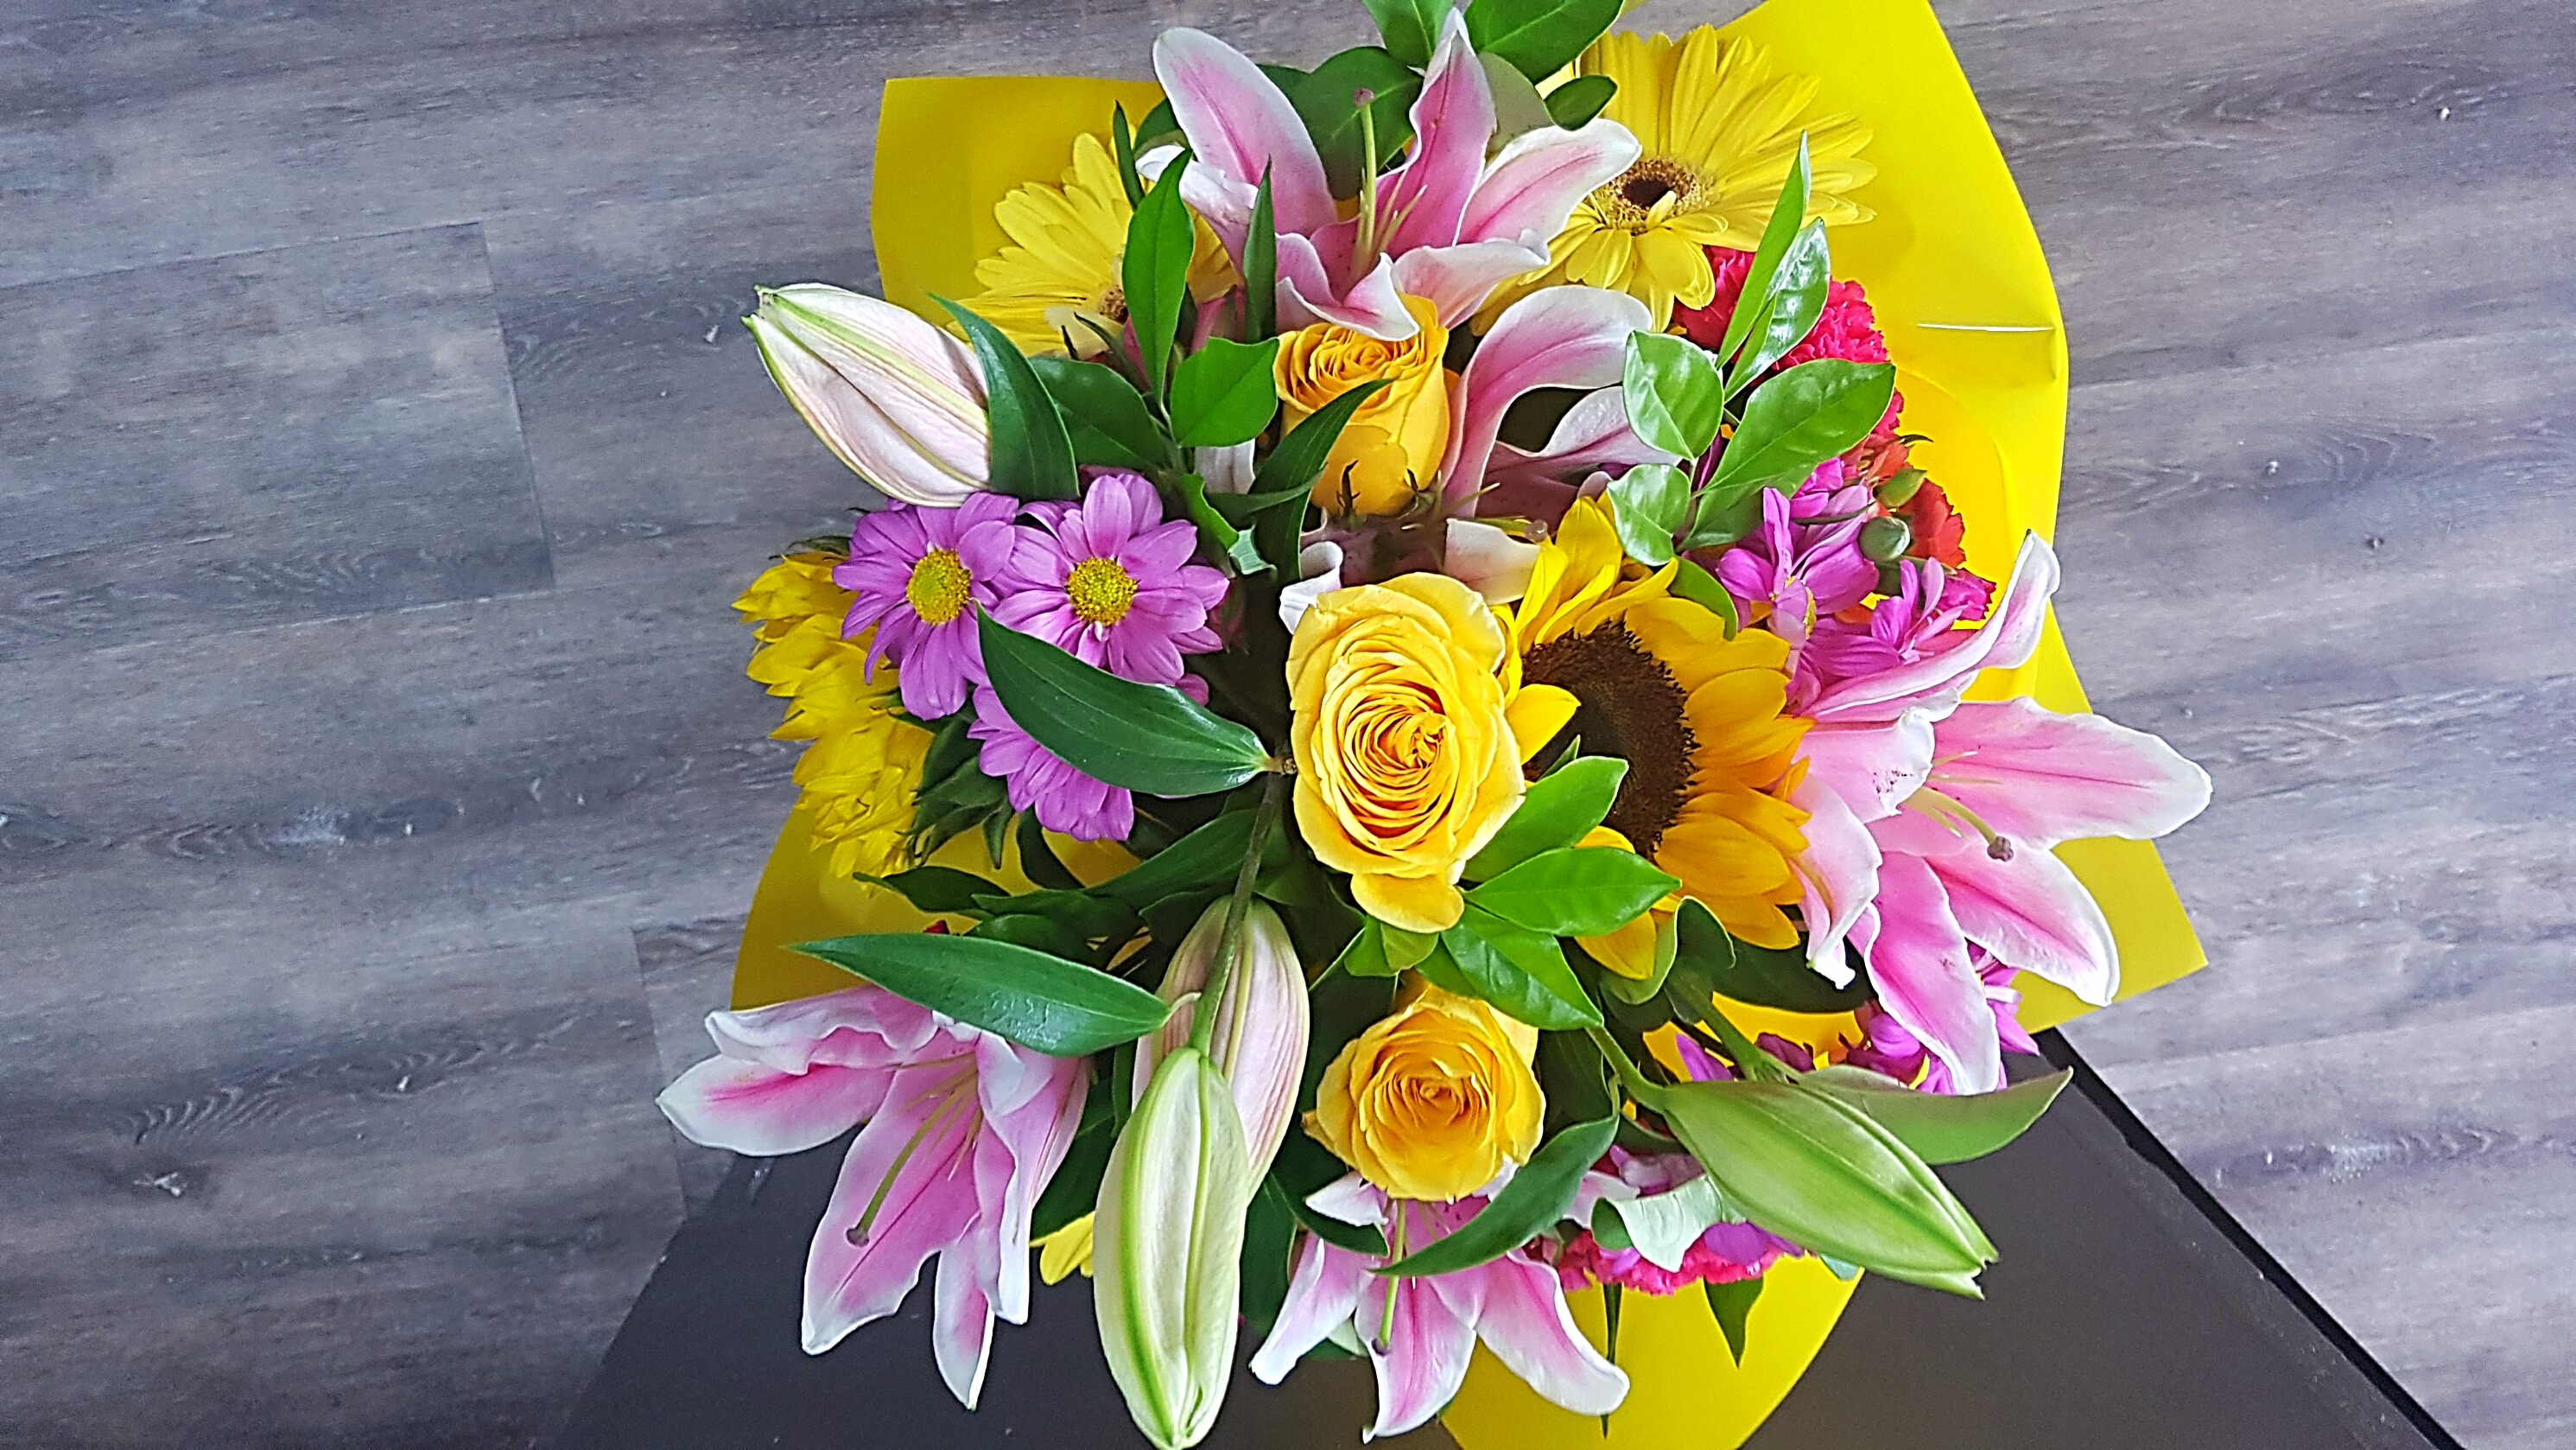 A BEAUTIFUL BOUQUET OF SCENT AND HAPPINESS. ORIENTAL LILIES FOR SCENT, SUNFLOWERS FOR JOY, CHRYSIES, AND CARNATIONS FOR LONGEVITY.